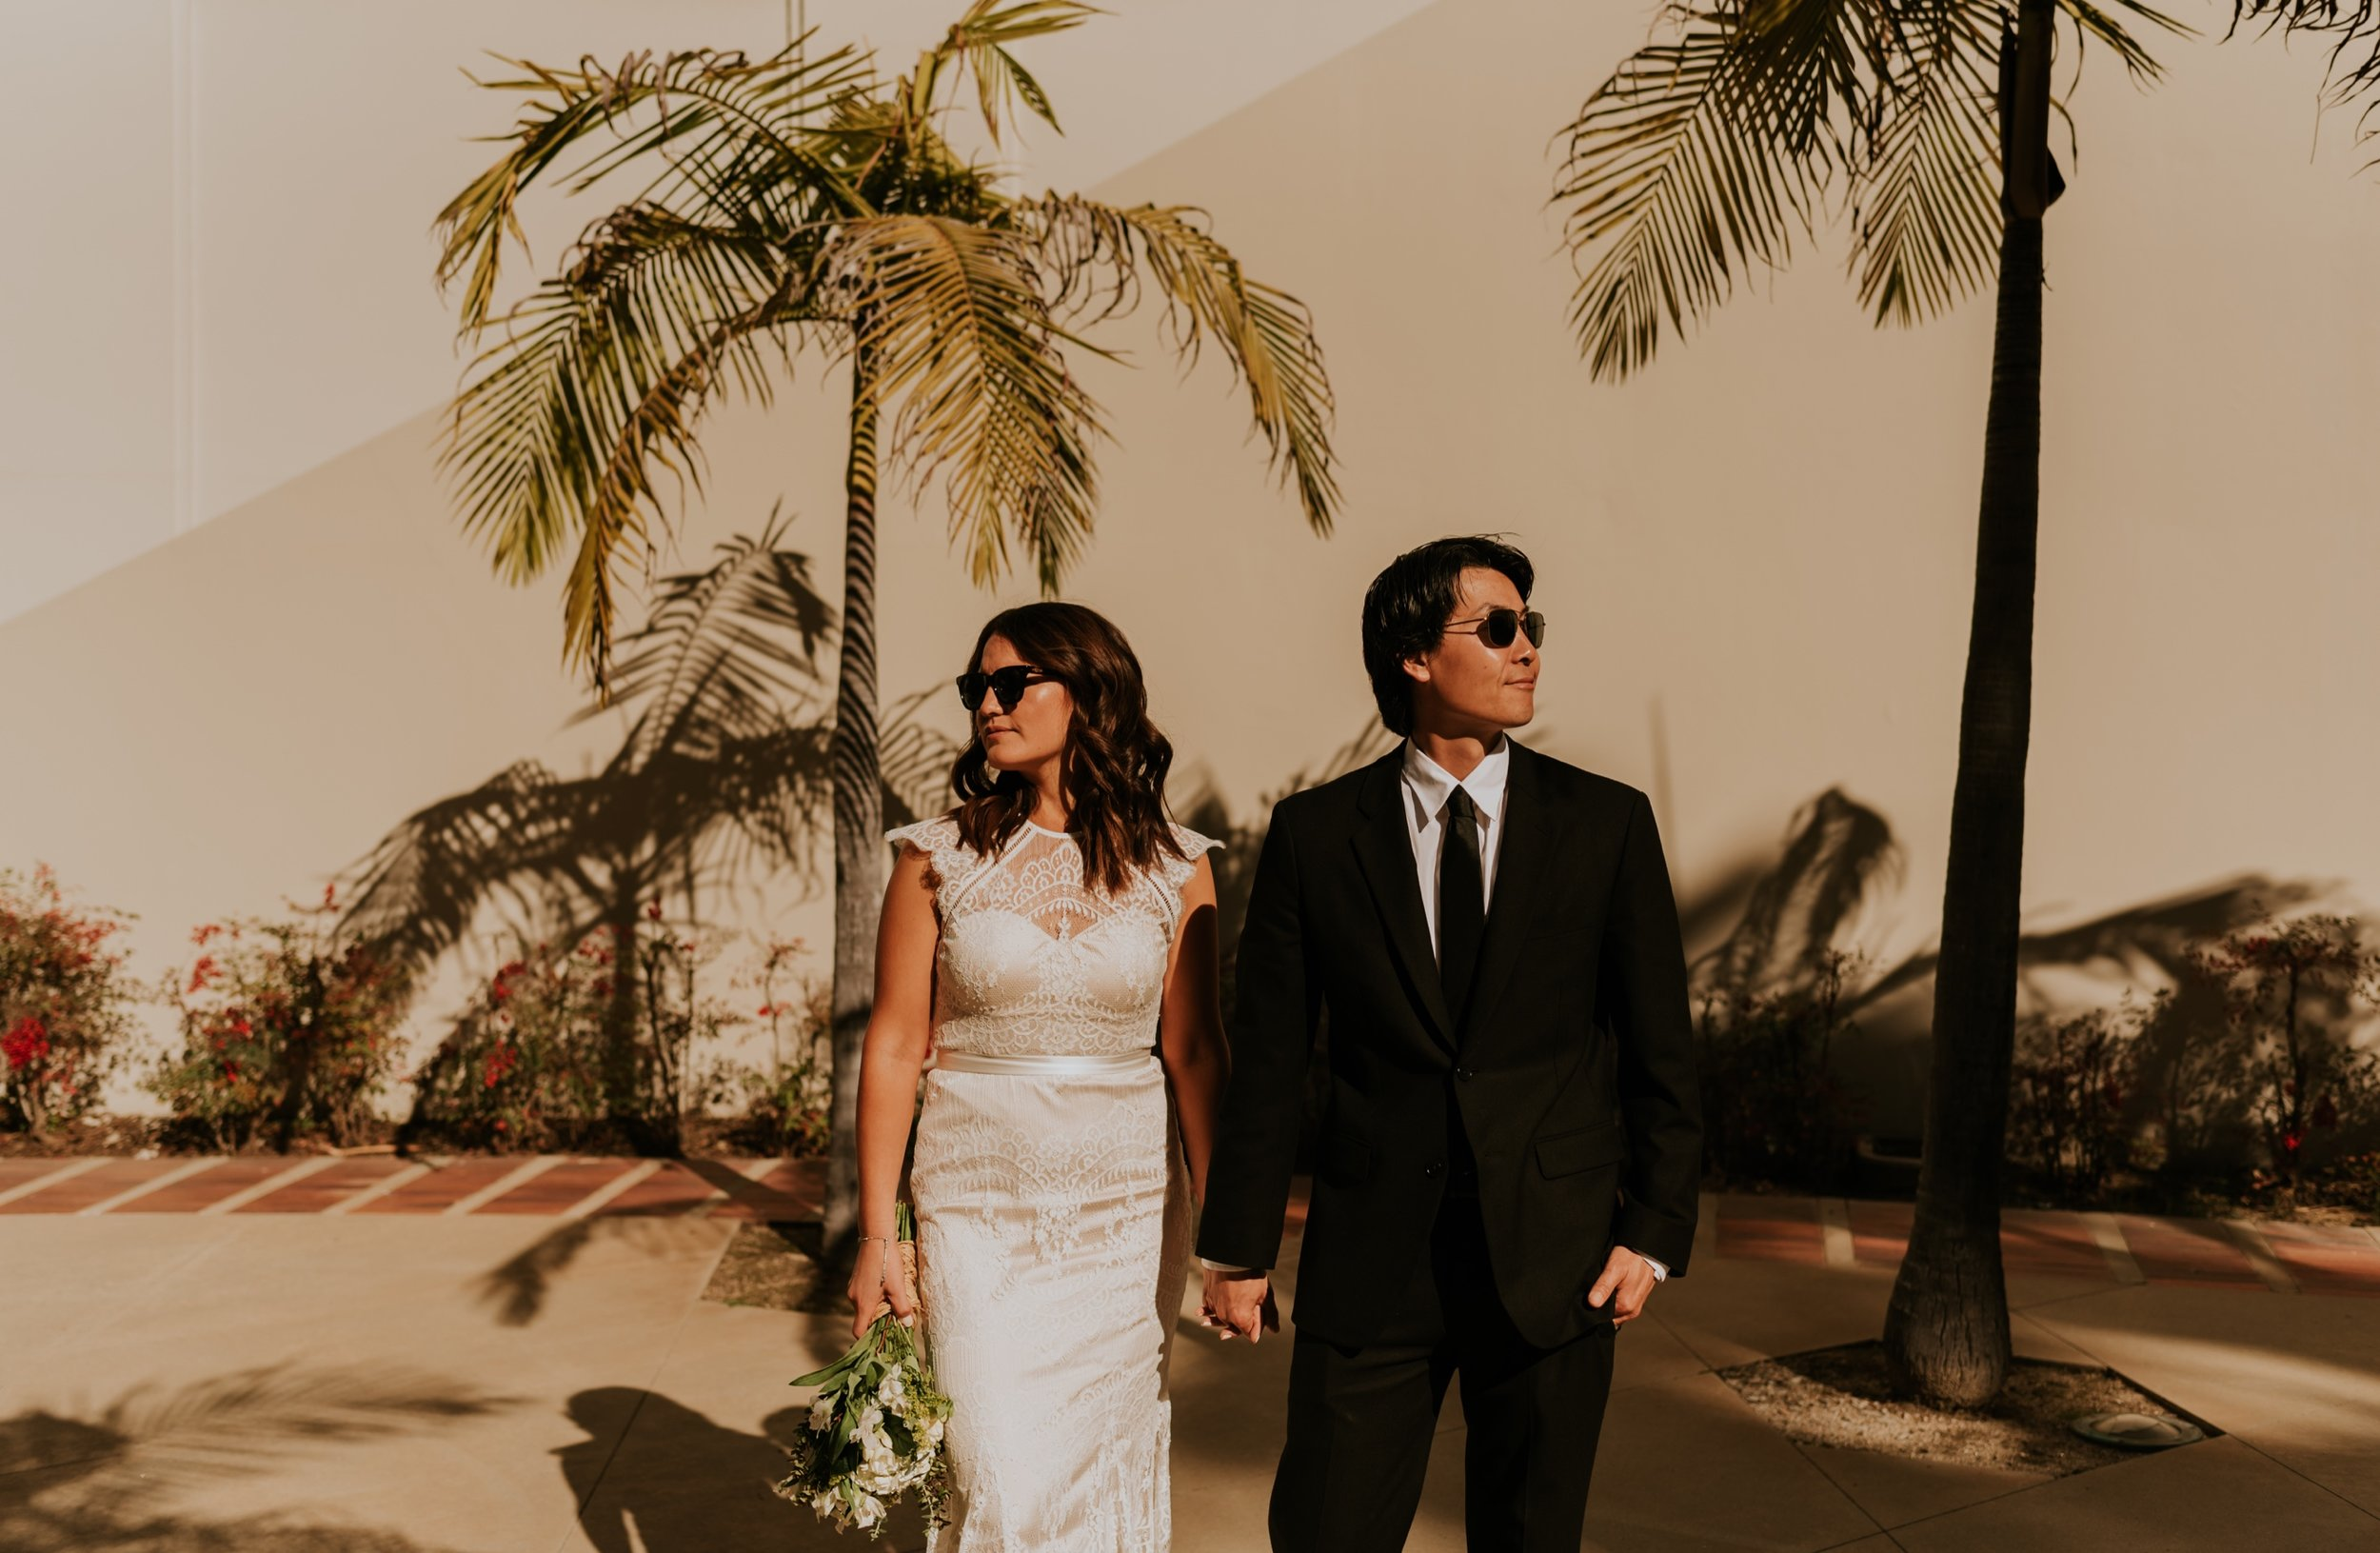 Santa Monica Pier Wedding Photos | Carrie Rogers Photography | Santa Monica Beach Wedding | Beverly Hills Elopement | Beverly Hills Wedding